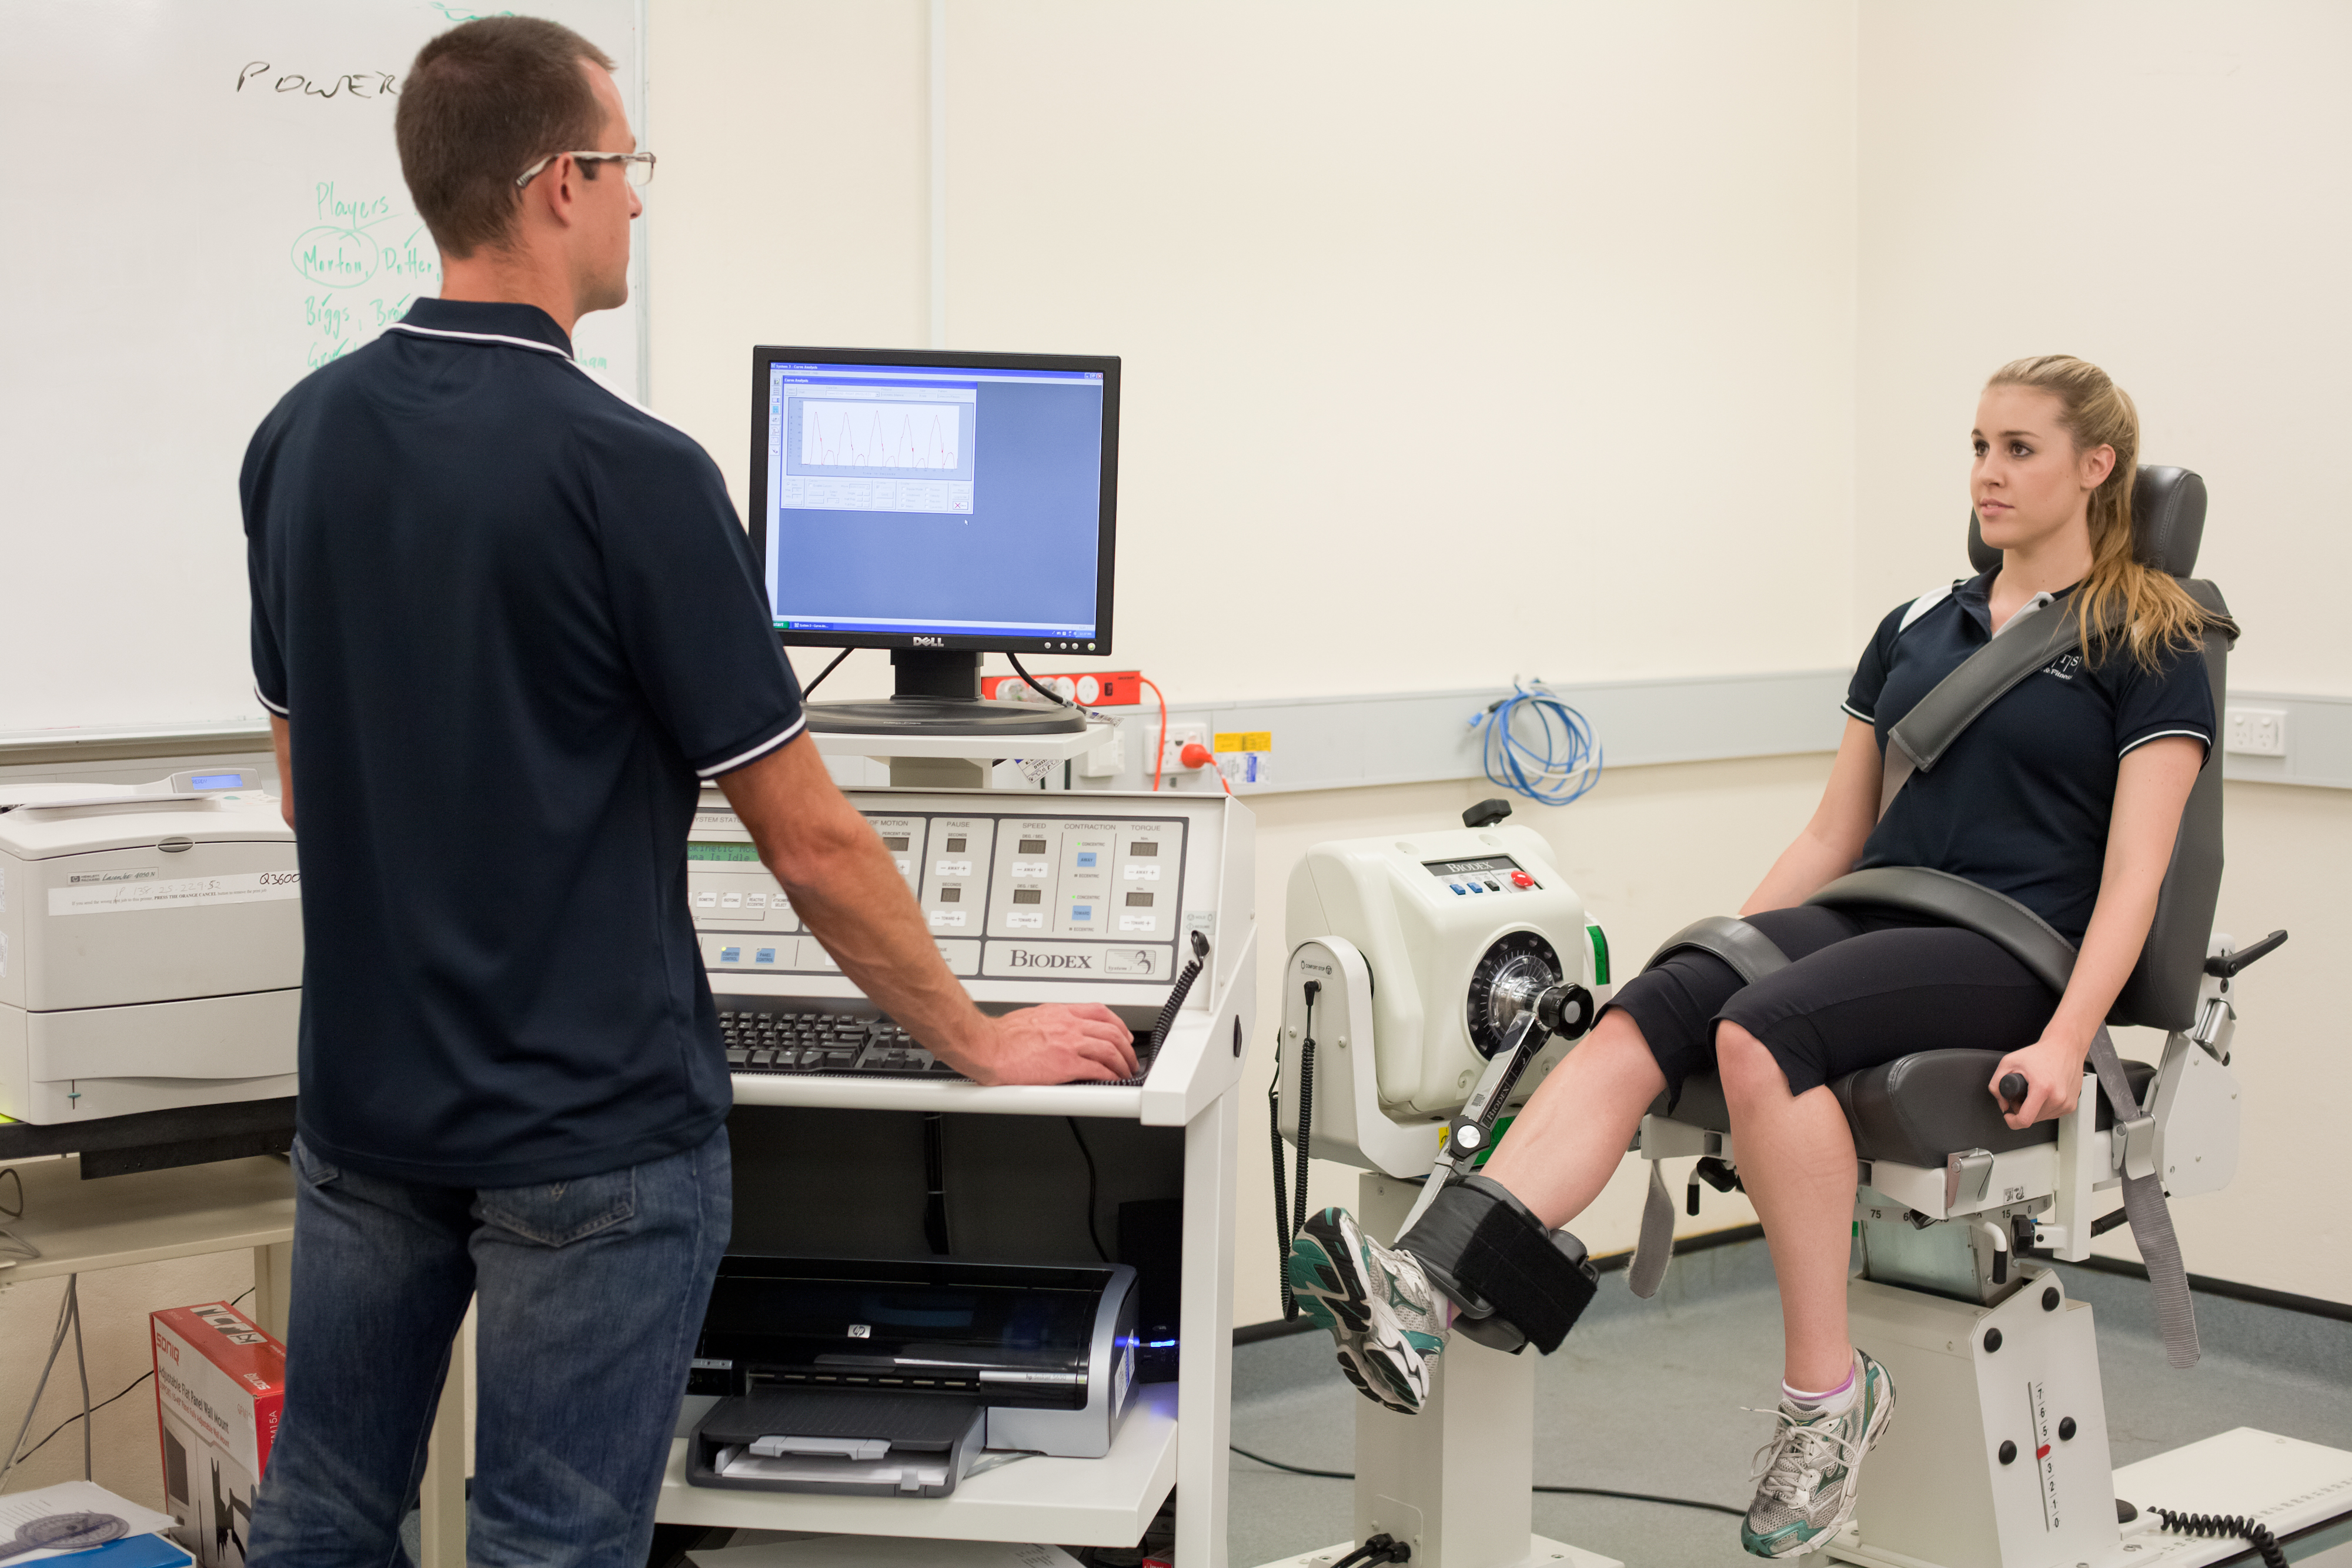 Kinesiology And Exercise Science international relations sydney university